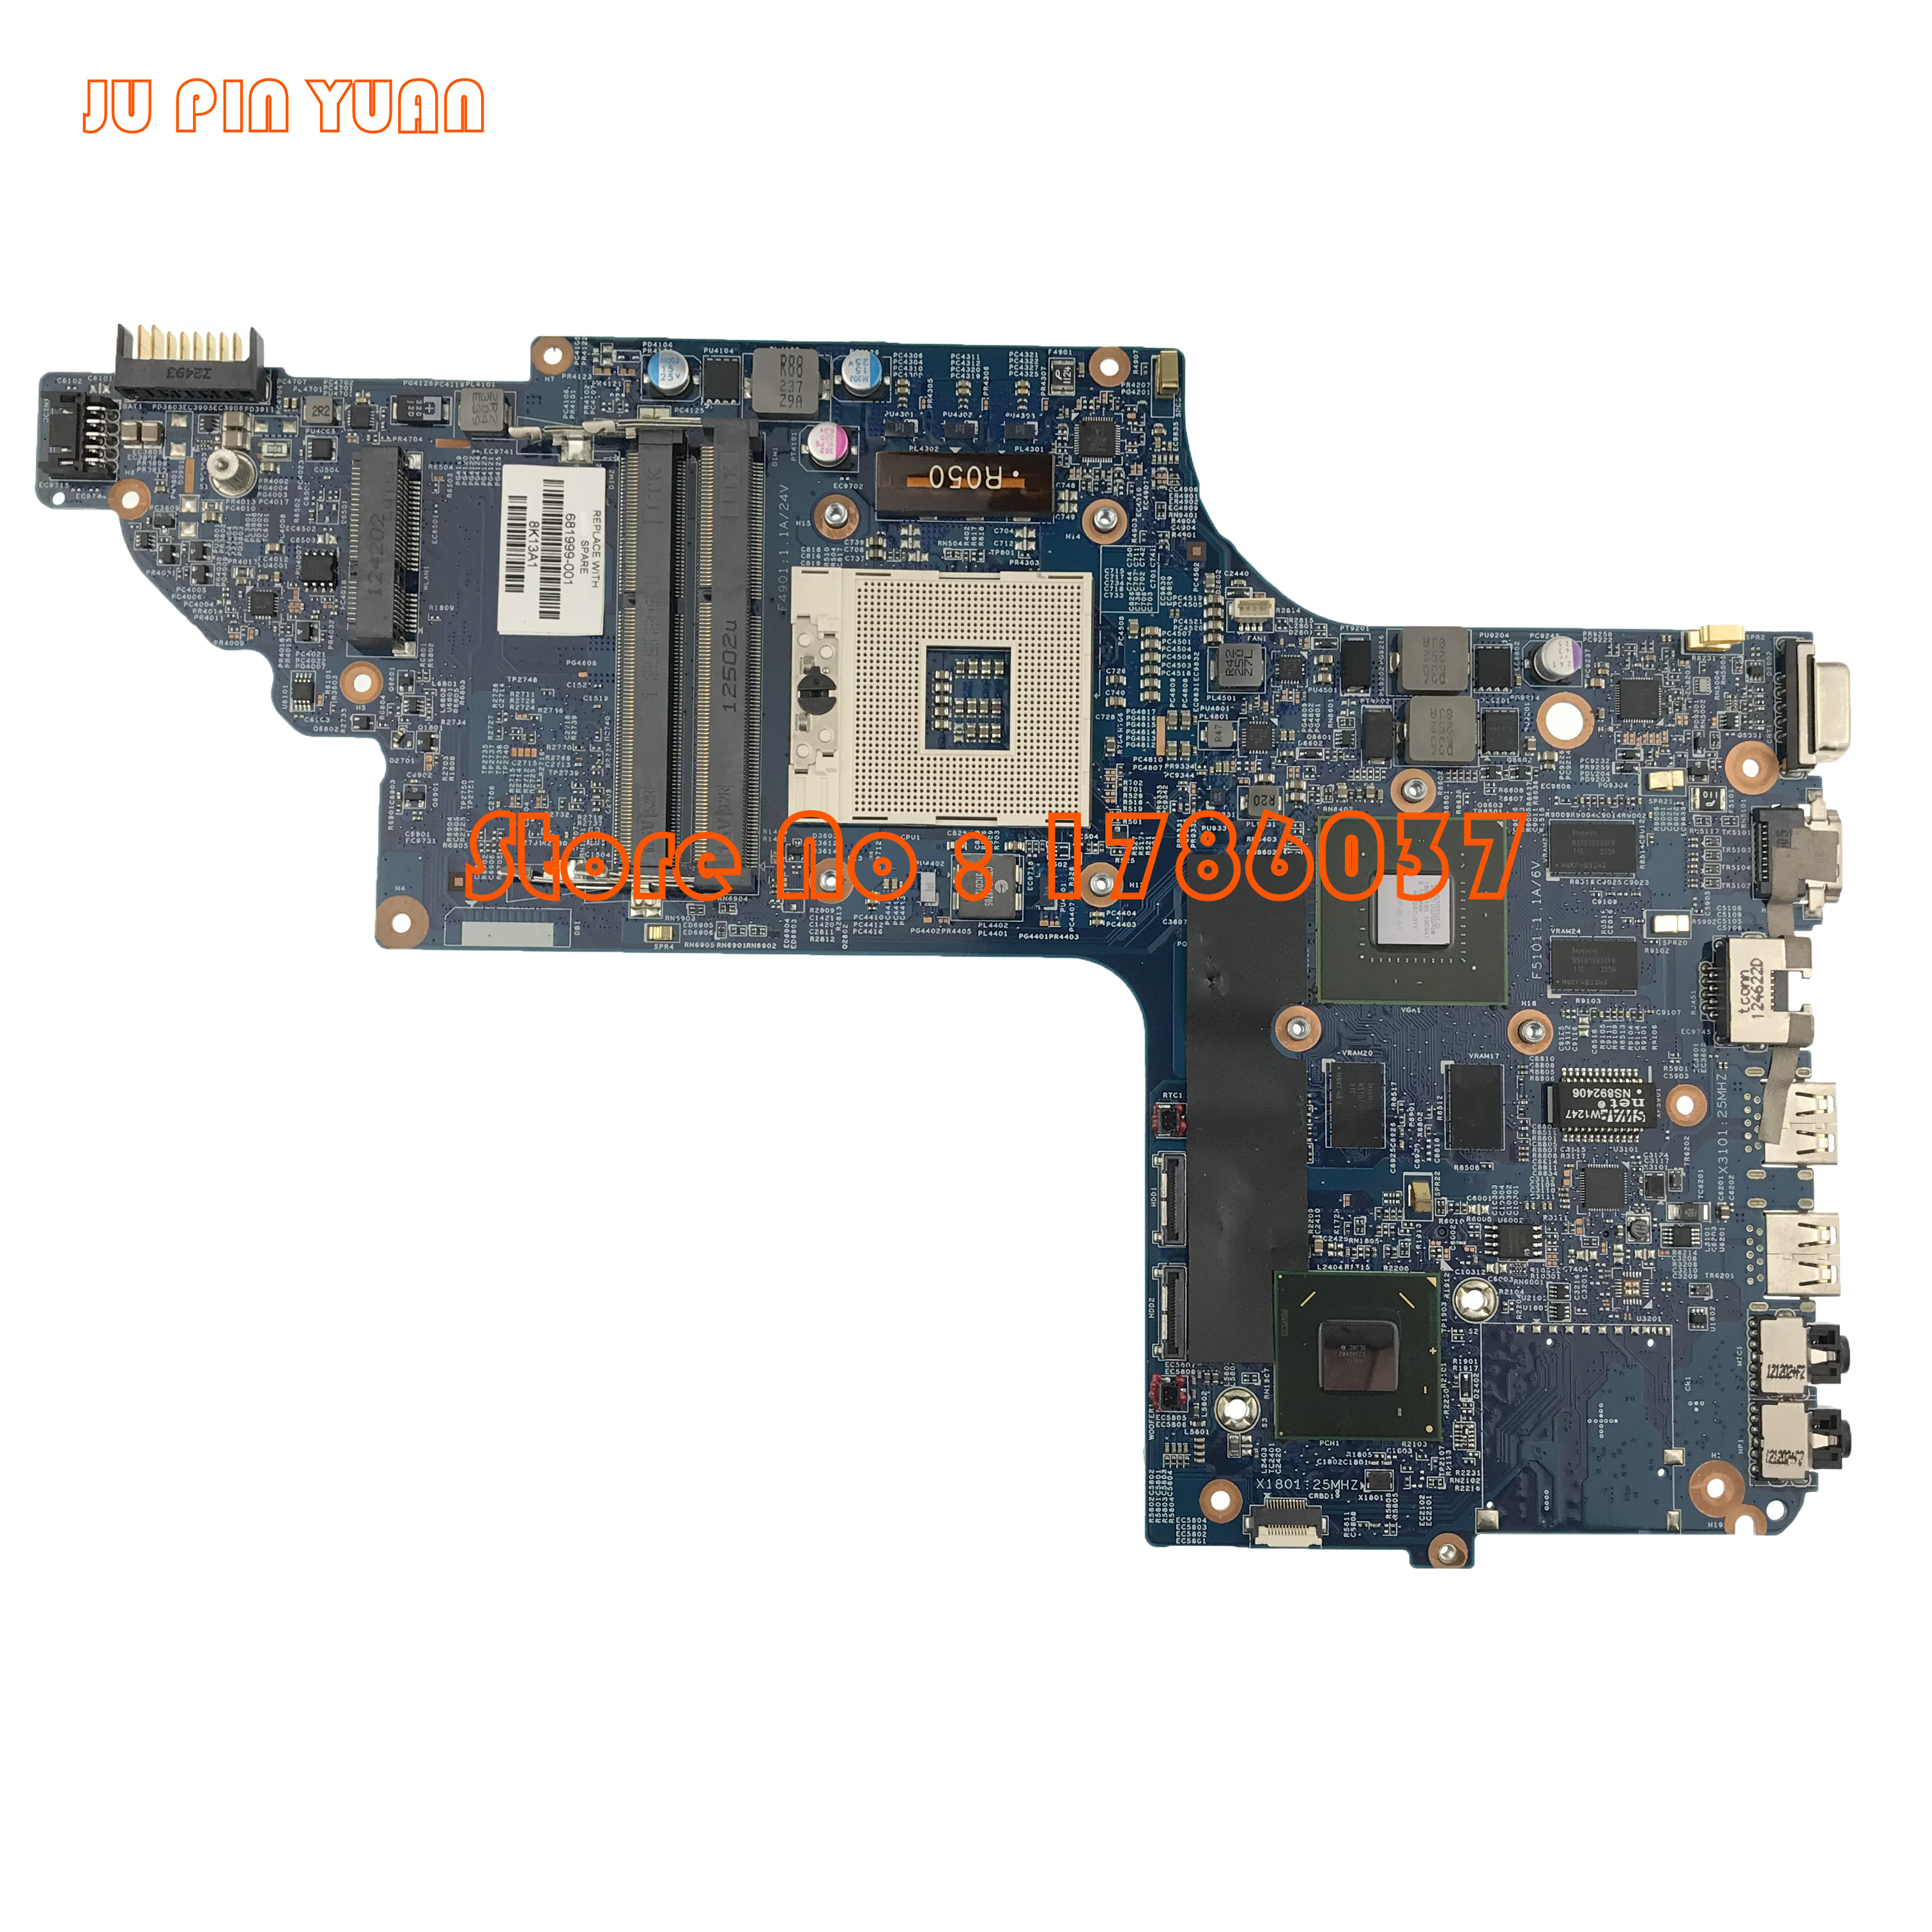 JU PIN YUAN 681999-501 681999-001 for HP Pavilion DV6  DV6T DV6-7000 series motherboard All functions fully TestedJU PIN YUAN 681999-501 681999-001 for HP Pavilion DV6  DV6T DV6-7000 series motherboard All functions fully Tested